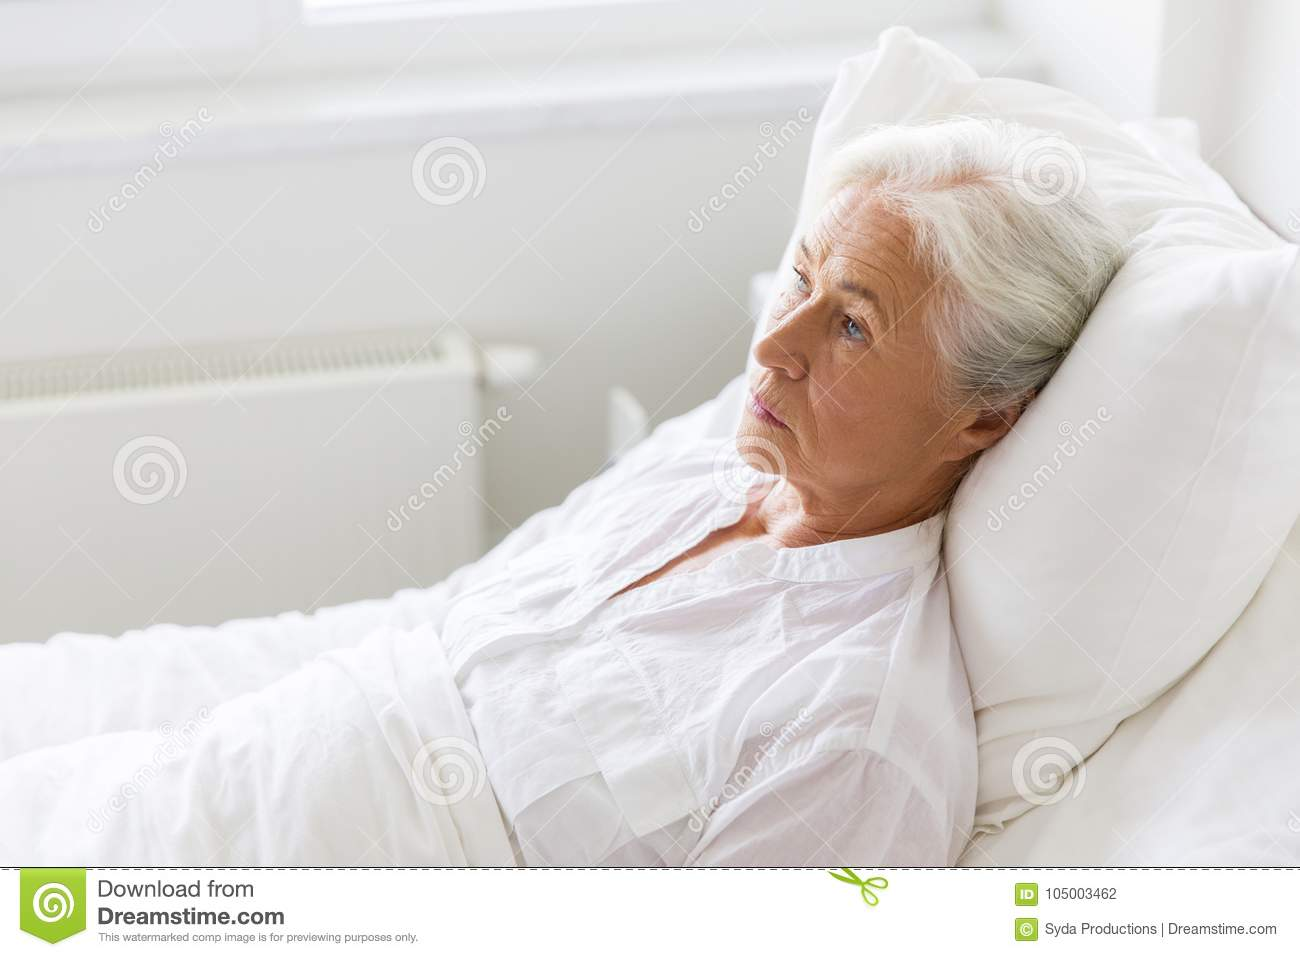 Image of: Portrait Medicine Healthcare And Old People Concept Sad Senior Woman Lying On Bed At Hospital Ward Dreamstimecom Sad Senior Woman Lying On Bed At Hospital Ward Stock Photo Image